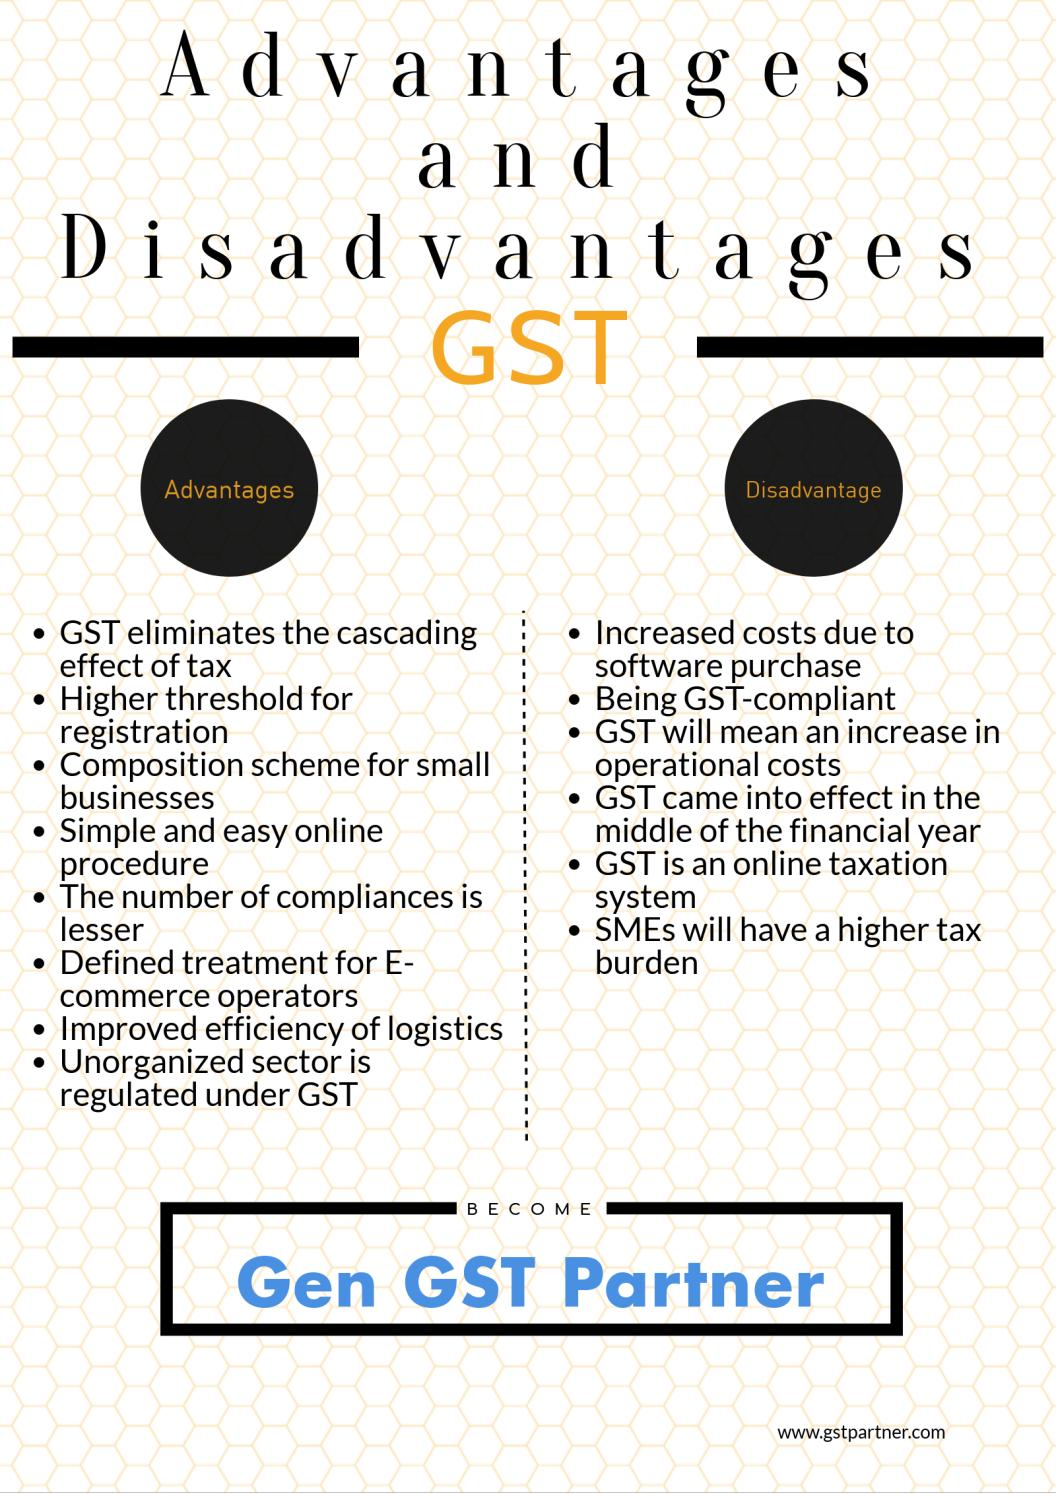 GST Benefits: Advantage and Disadvantage of GST by Rajeev